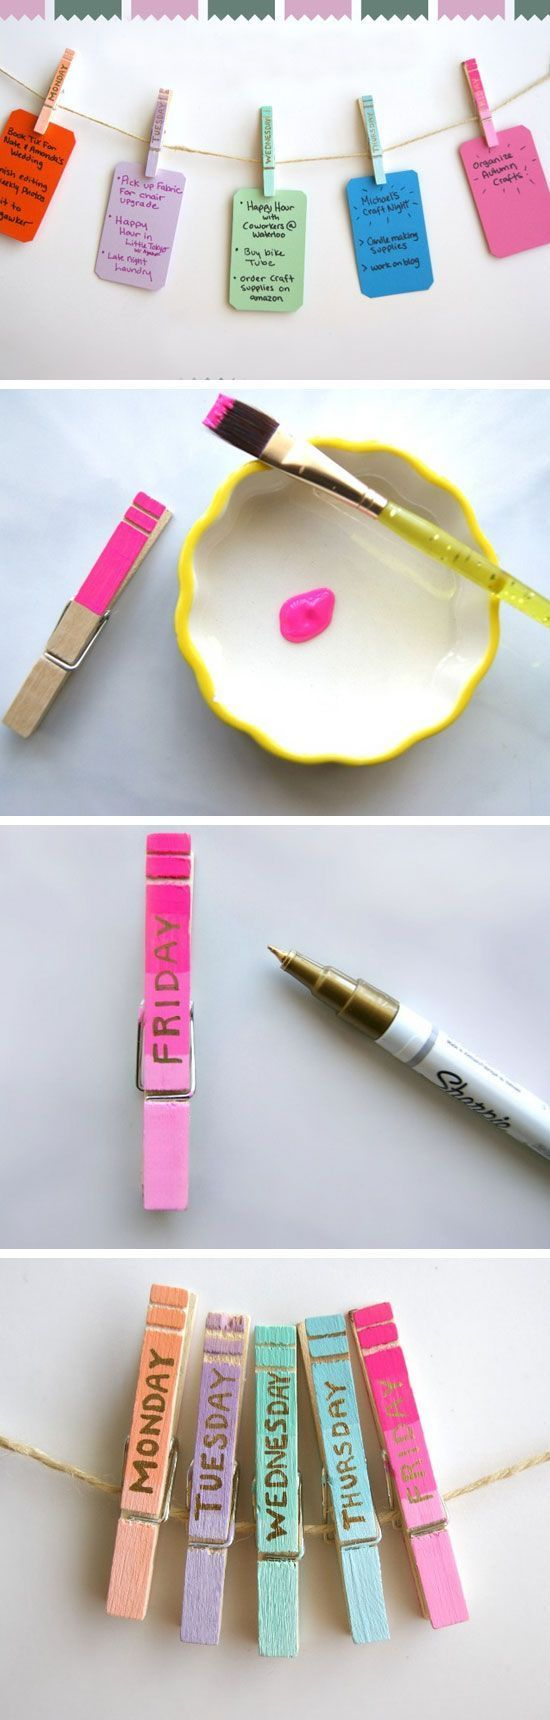 24 Life Hacks Every Girl Should Know   Seriously Awesome. 25  unique Easy diy room decor ideas on Pinterest   Desk